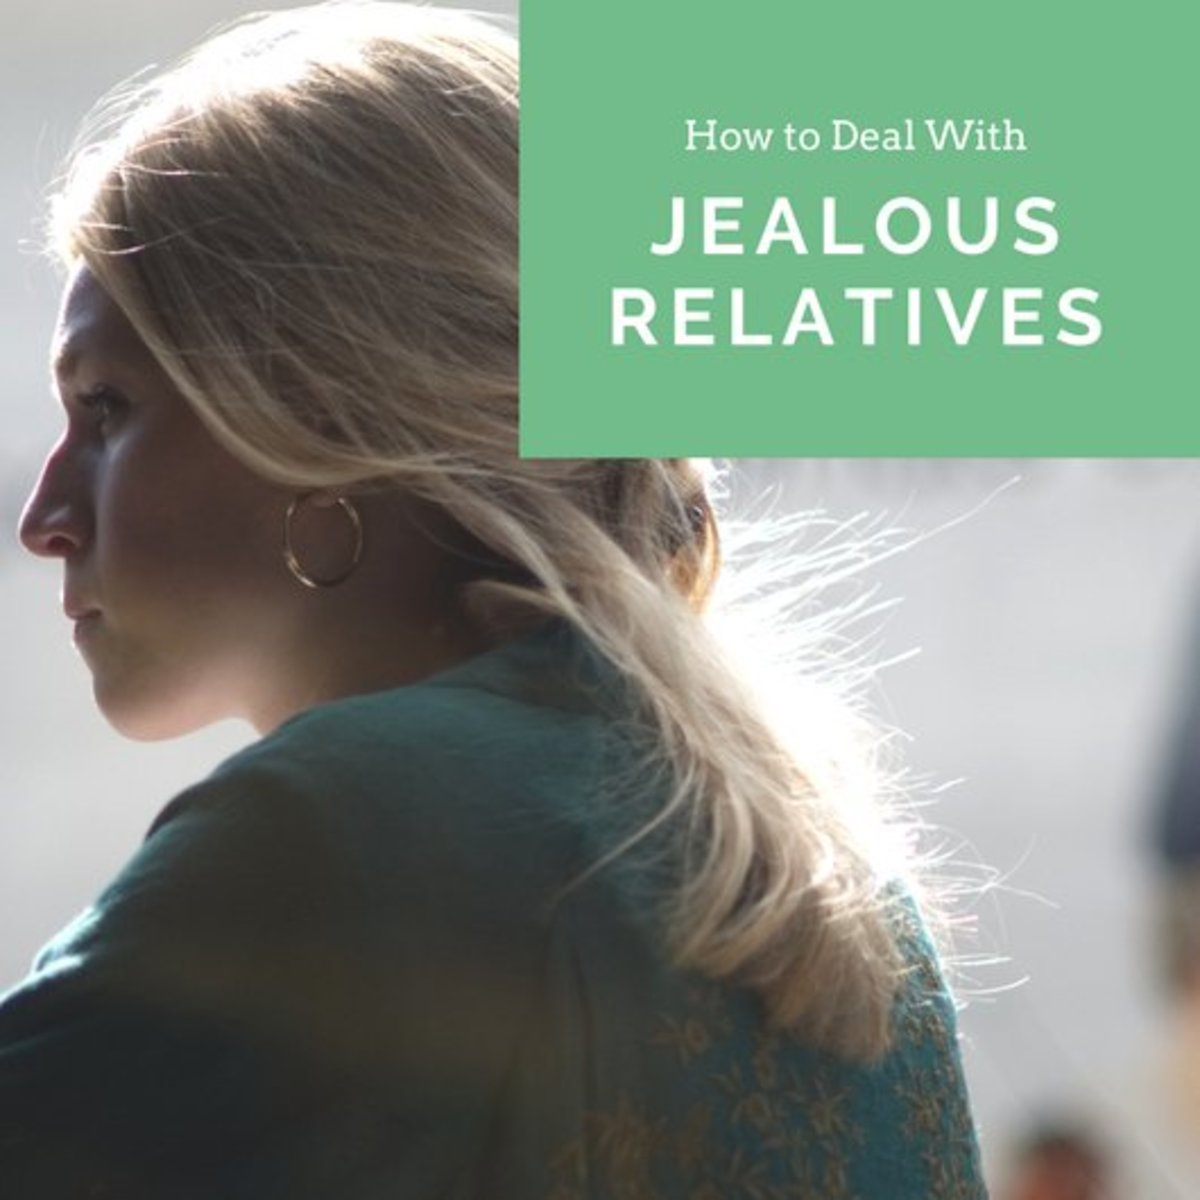 Learn how control jealousy